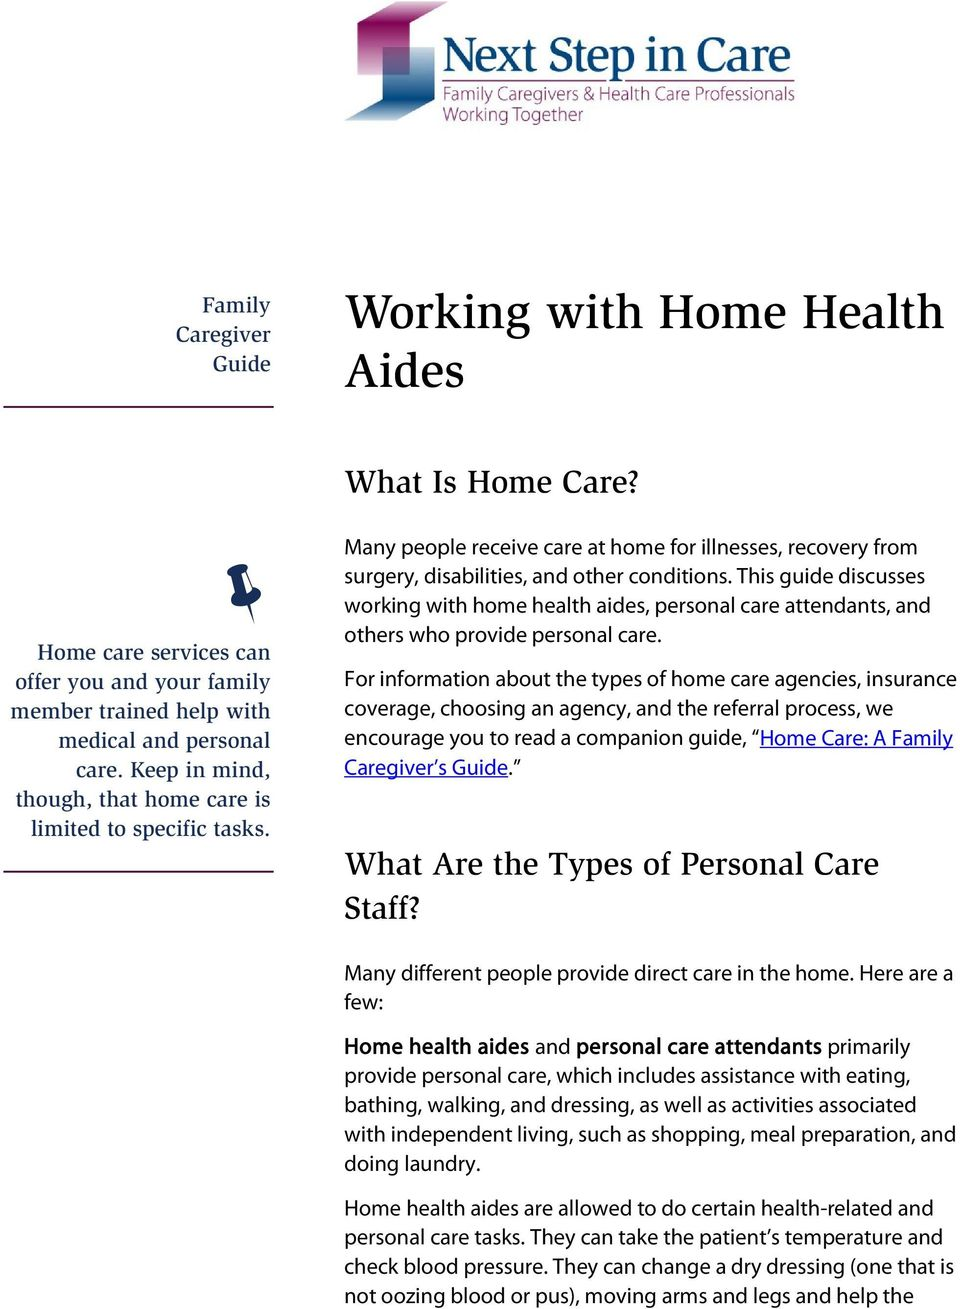 This guide discusses working with home health aides, personal care attendants, and others who provide personal care.